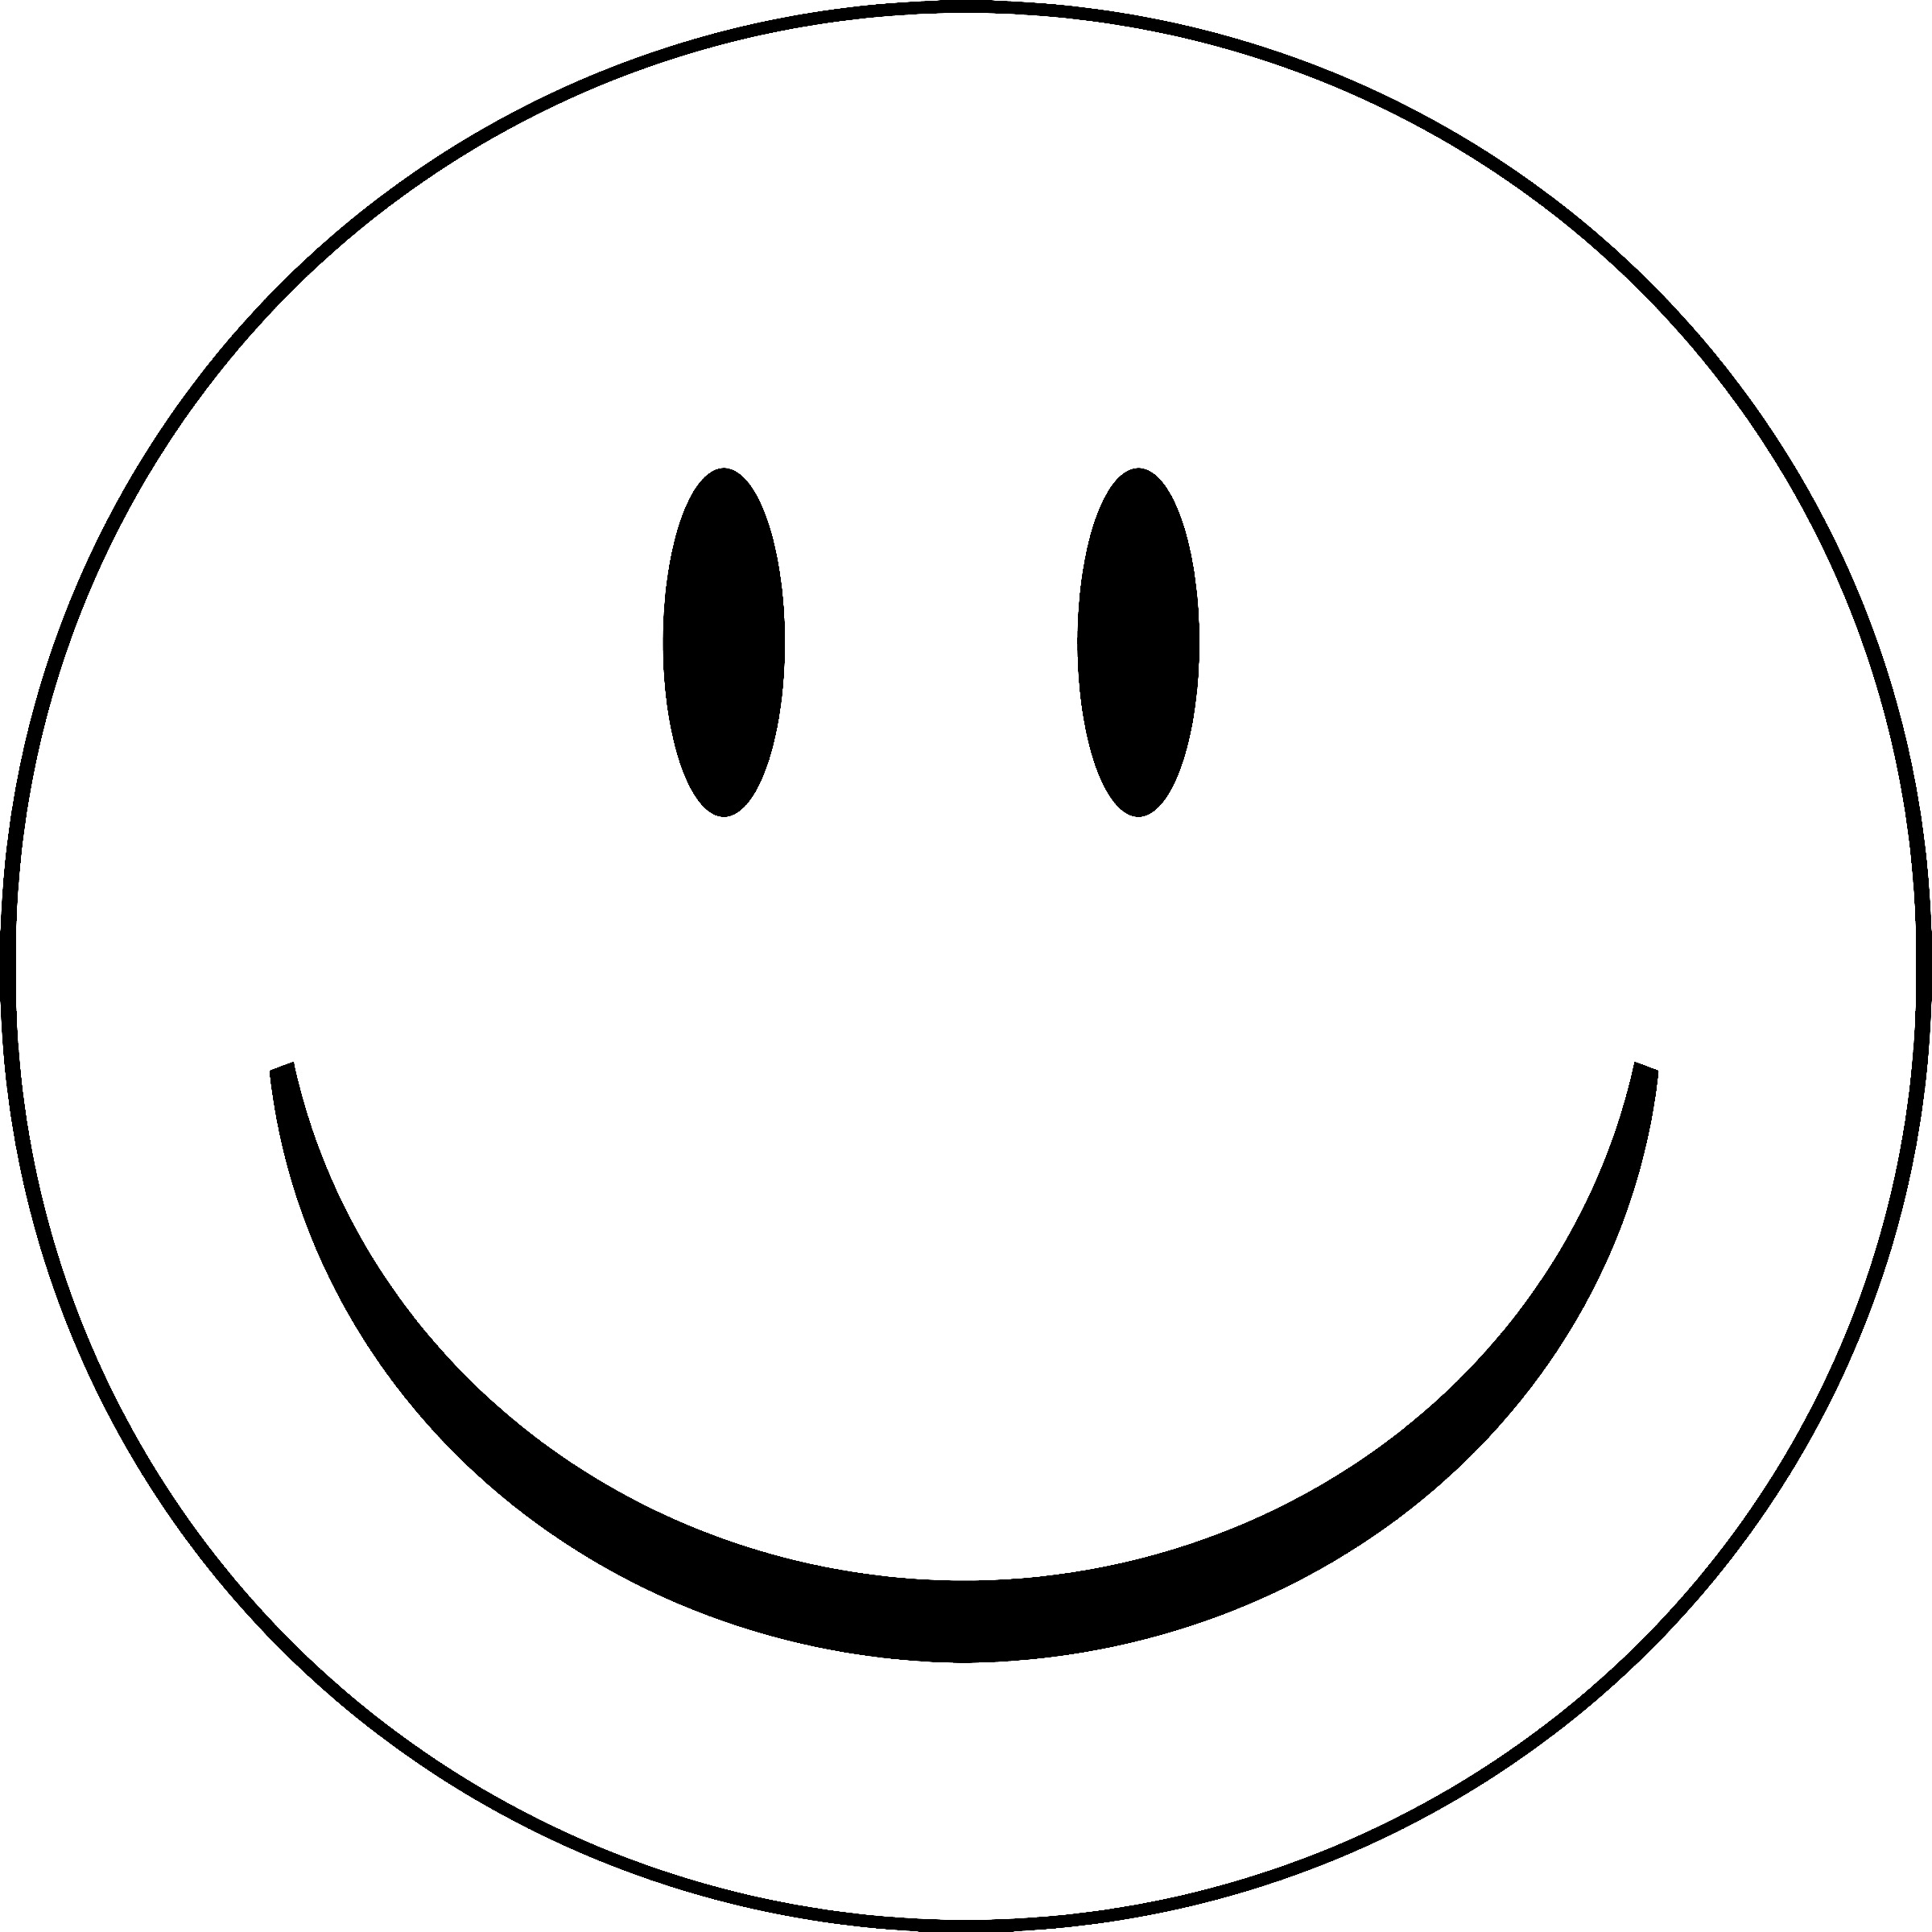 2400x2400 Blank Smiley Face Coloring Pages For Kids Smiley